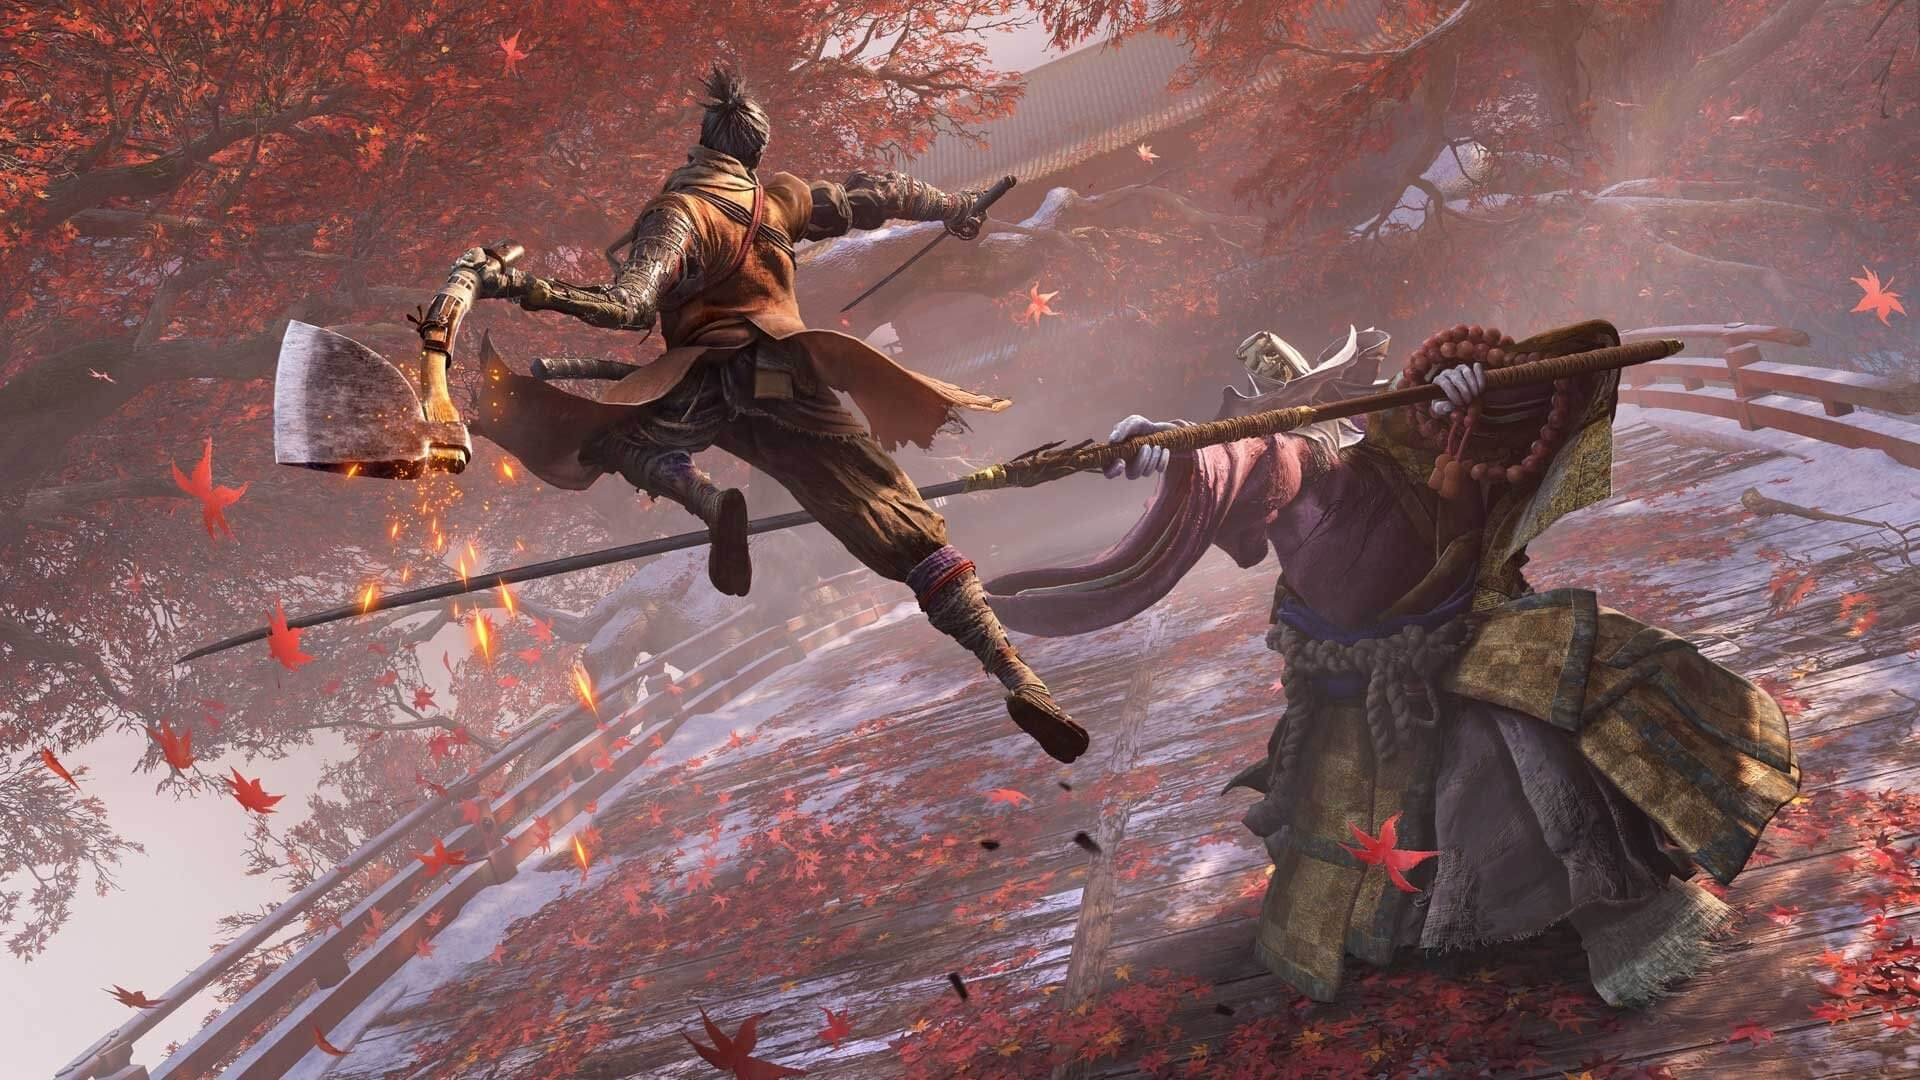 Sekiro: Shadows Die Twice sold over 2 million copies in under two weeks